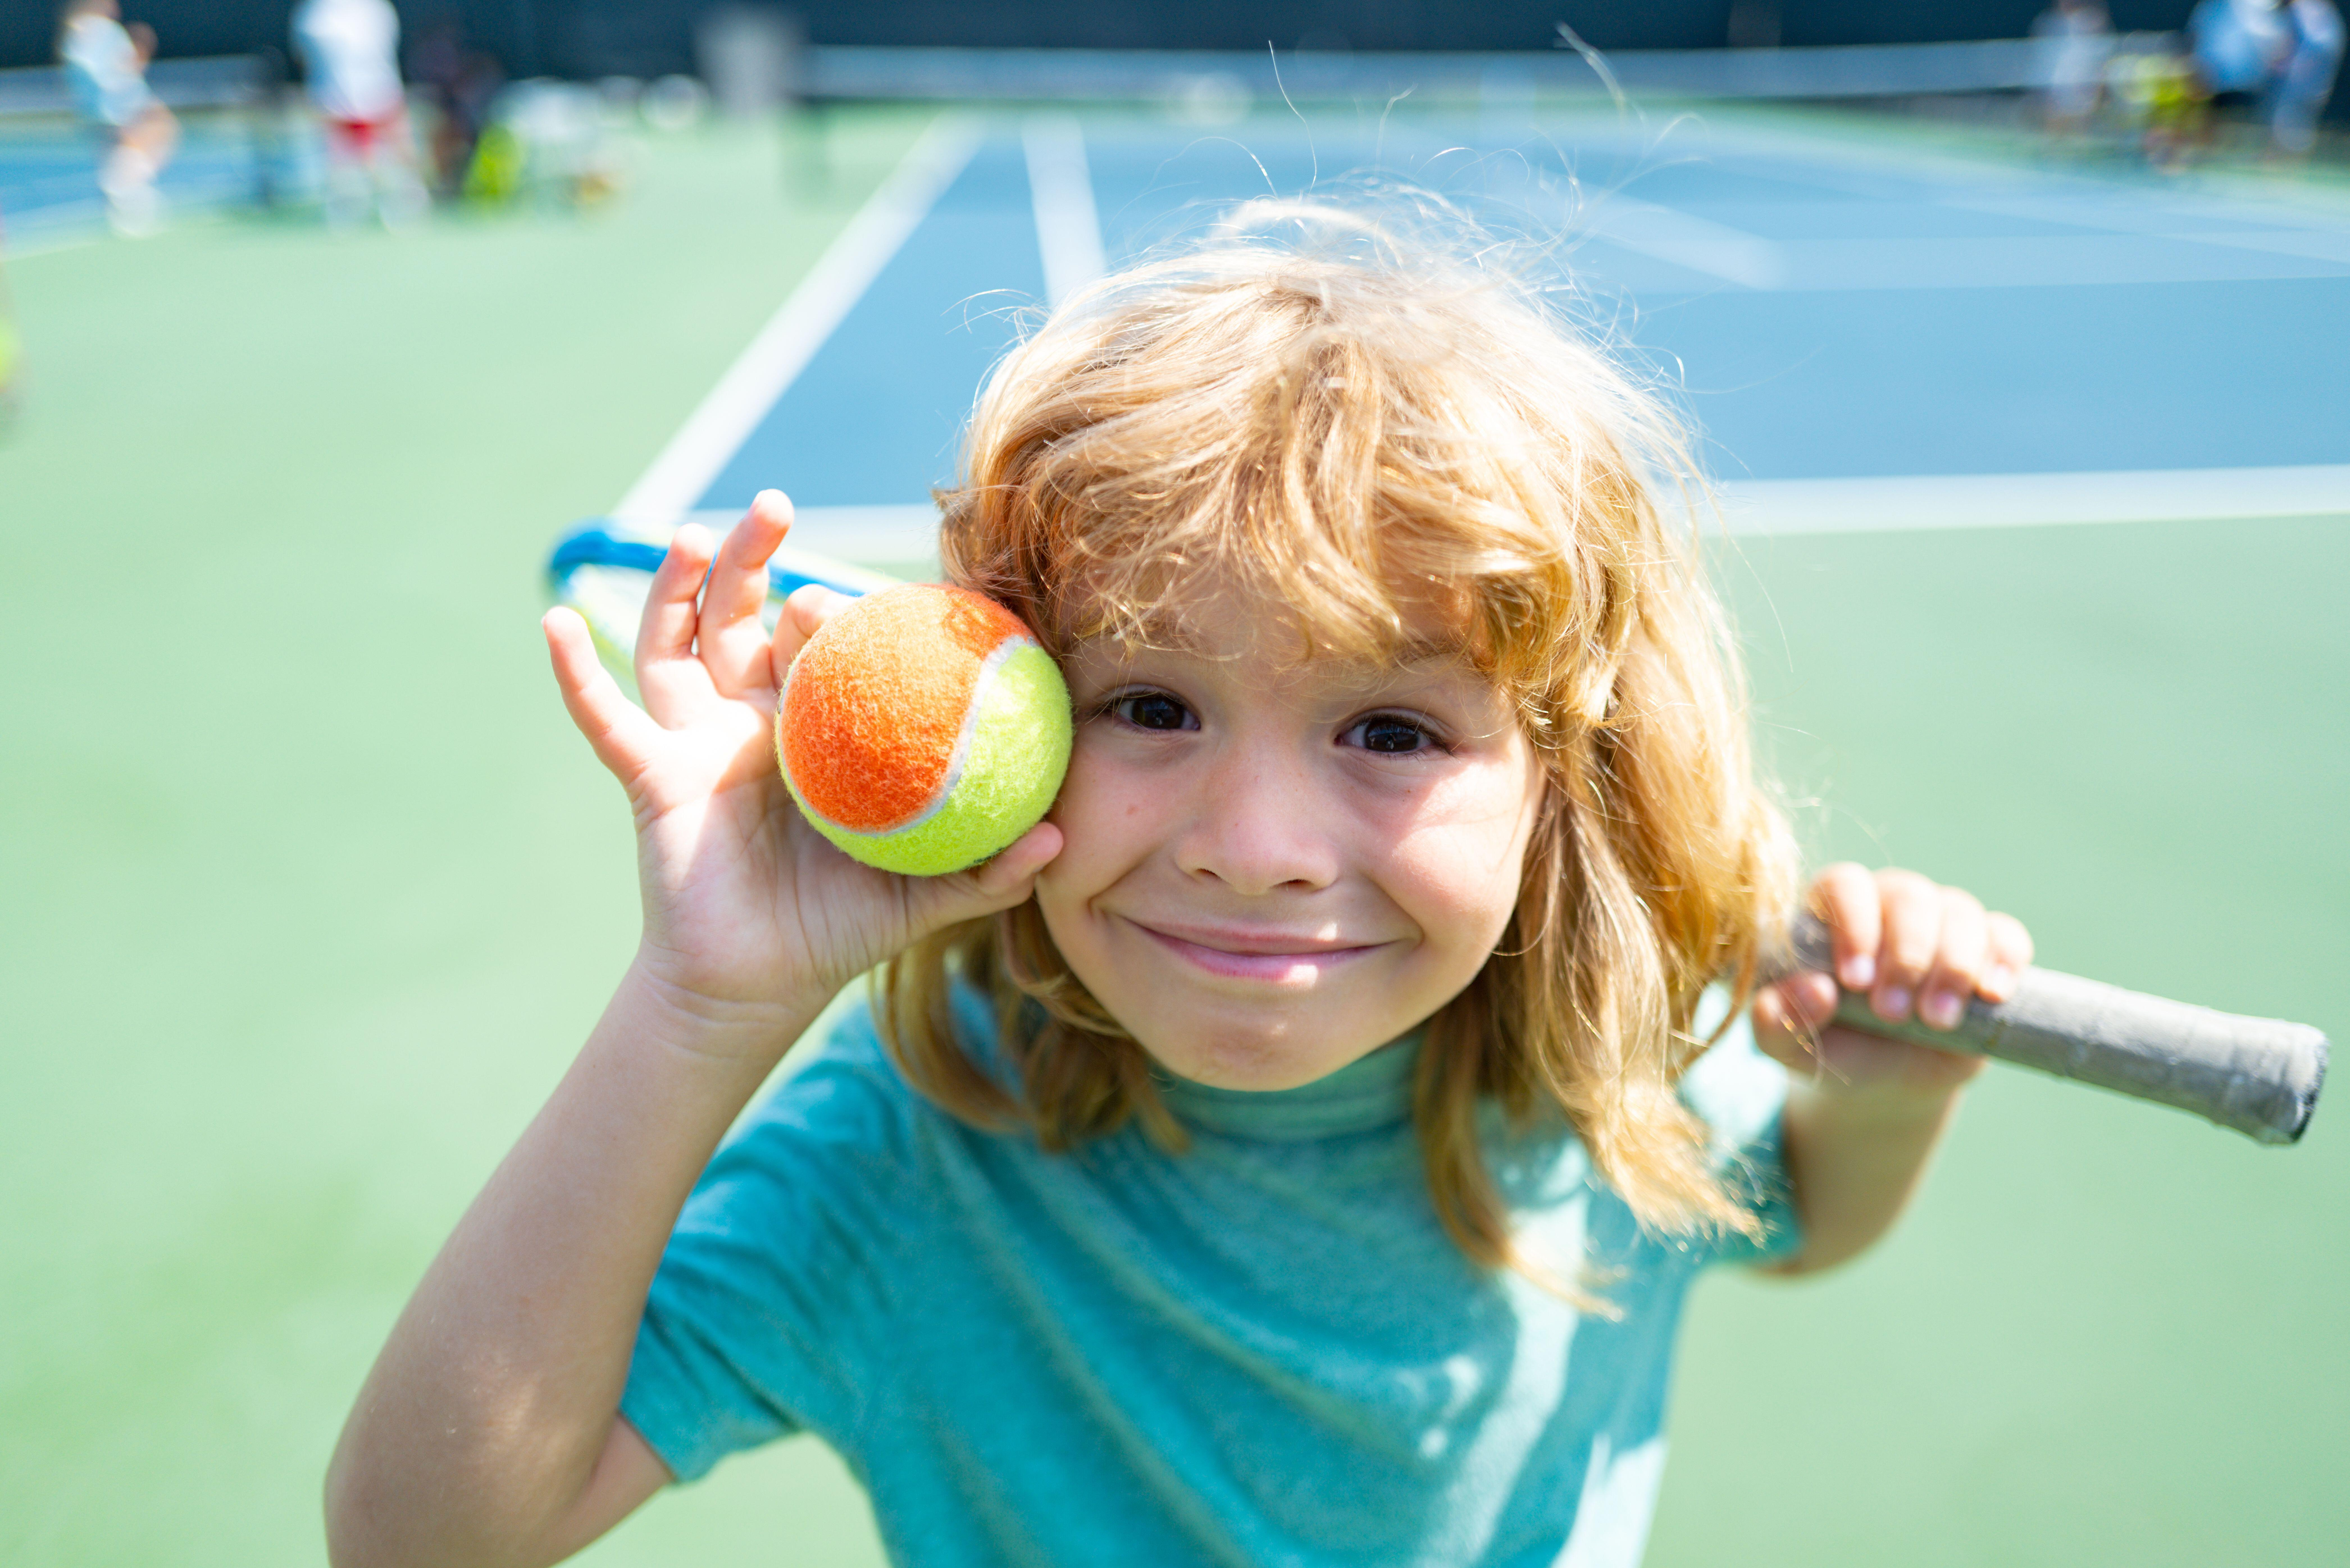 Child with tennis ball and racket